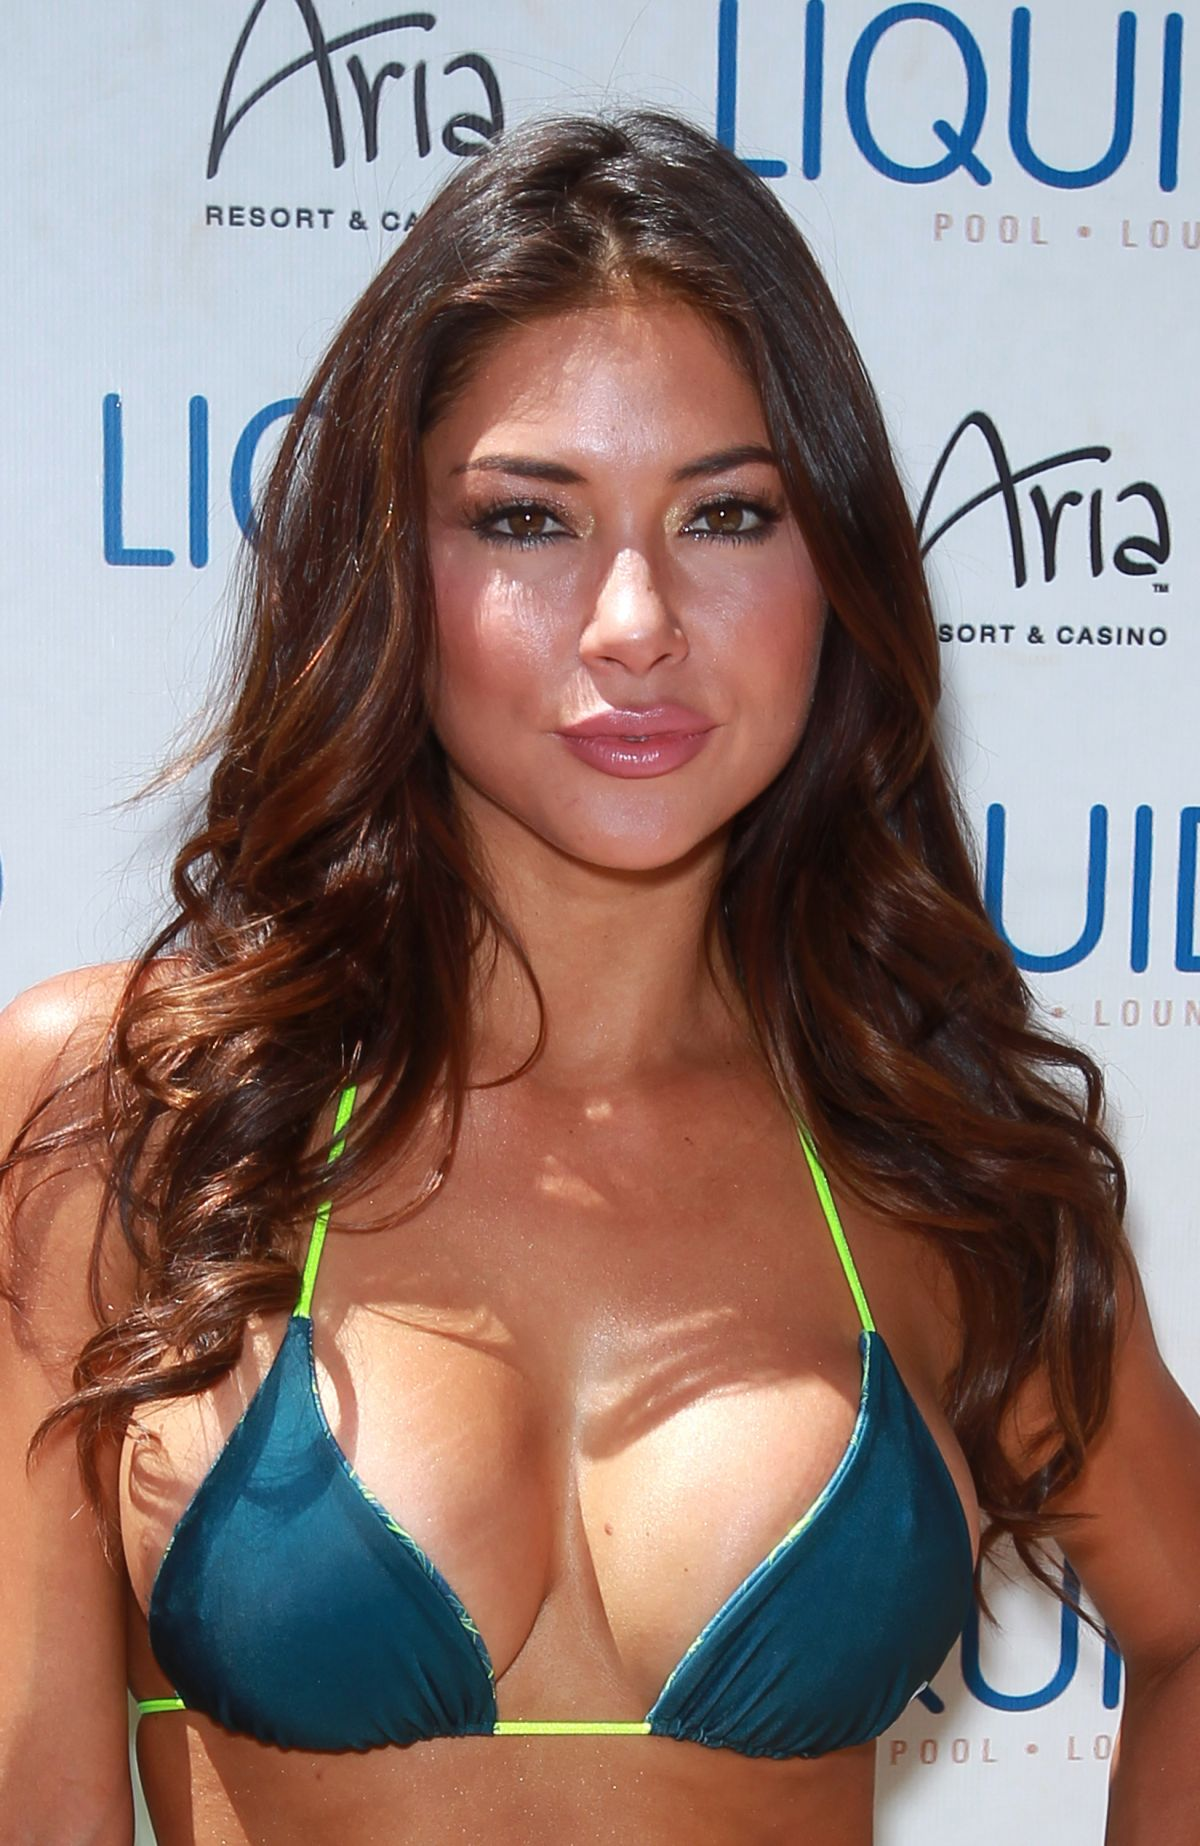 arianny celeste is princess leiaarianny celeste 2017 calendar, arianny celeste is princess leia, arianny celeste burkman, arianny celeste workout, arianny celeste kimdir, arianny celeste wdw, arianny celeste inst, arianny celeste bud light, arianny celeste insta, arianny celeste news, arianny celeste beach, arianny celeste википедия, arianny celeste instagram photos, arianny celeste maxim 2015, arianny celeste twitter, arianny celeste facebook